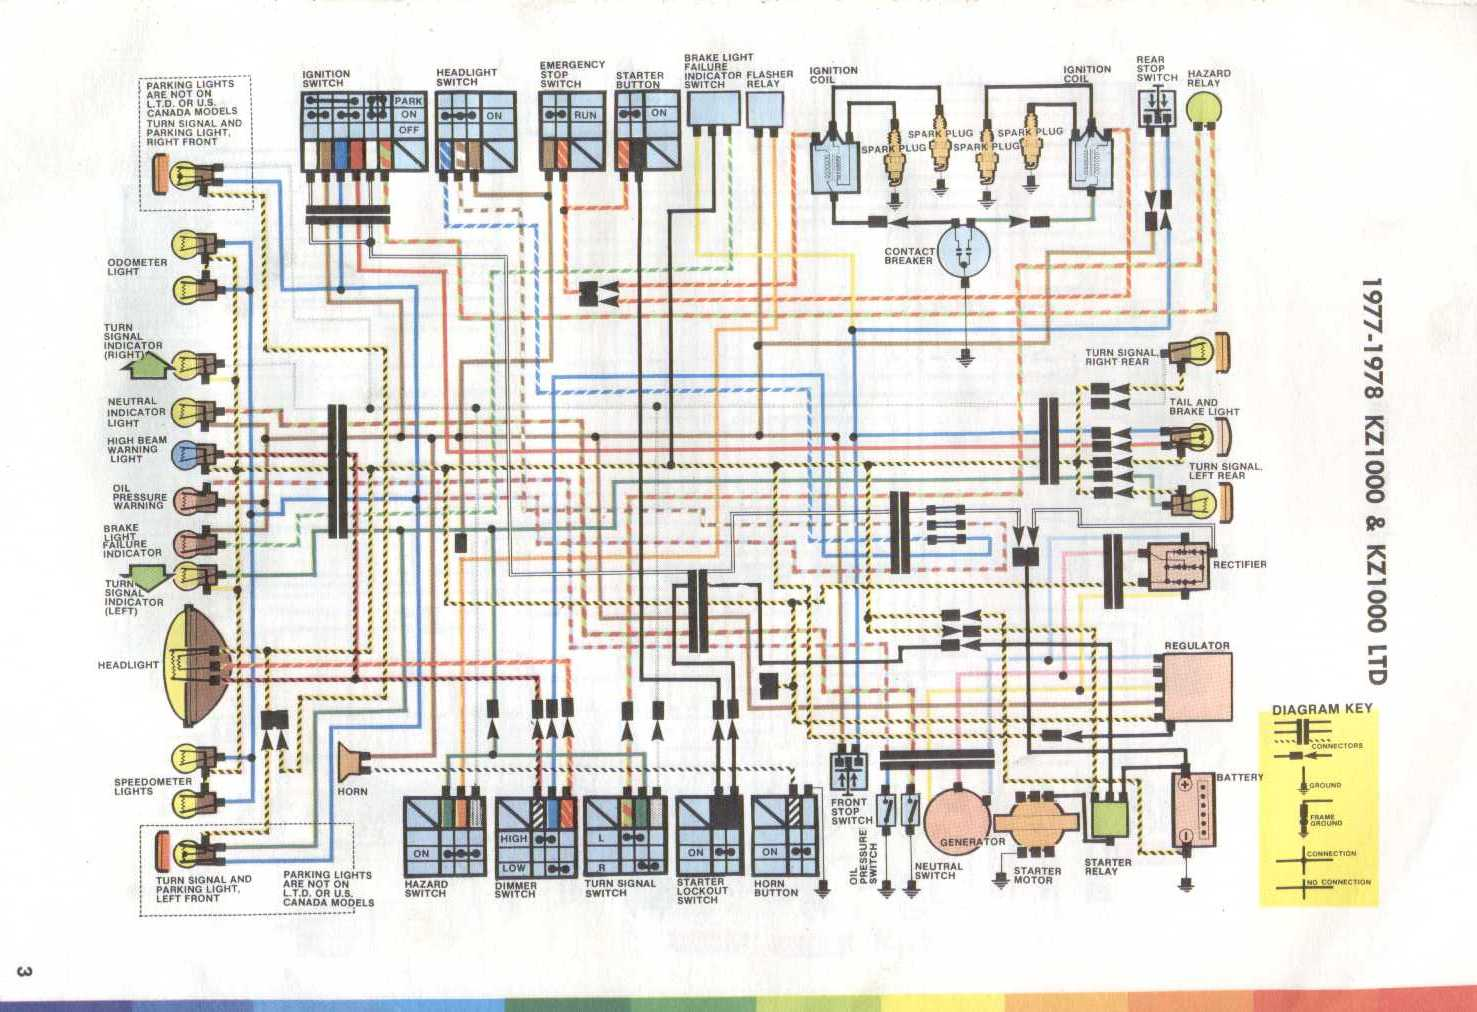 hight resolution of simple wiring diagram for kz1000 wiring diagram listkz1000 fuse diagram wiring diagram home k z 1000 fuse